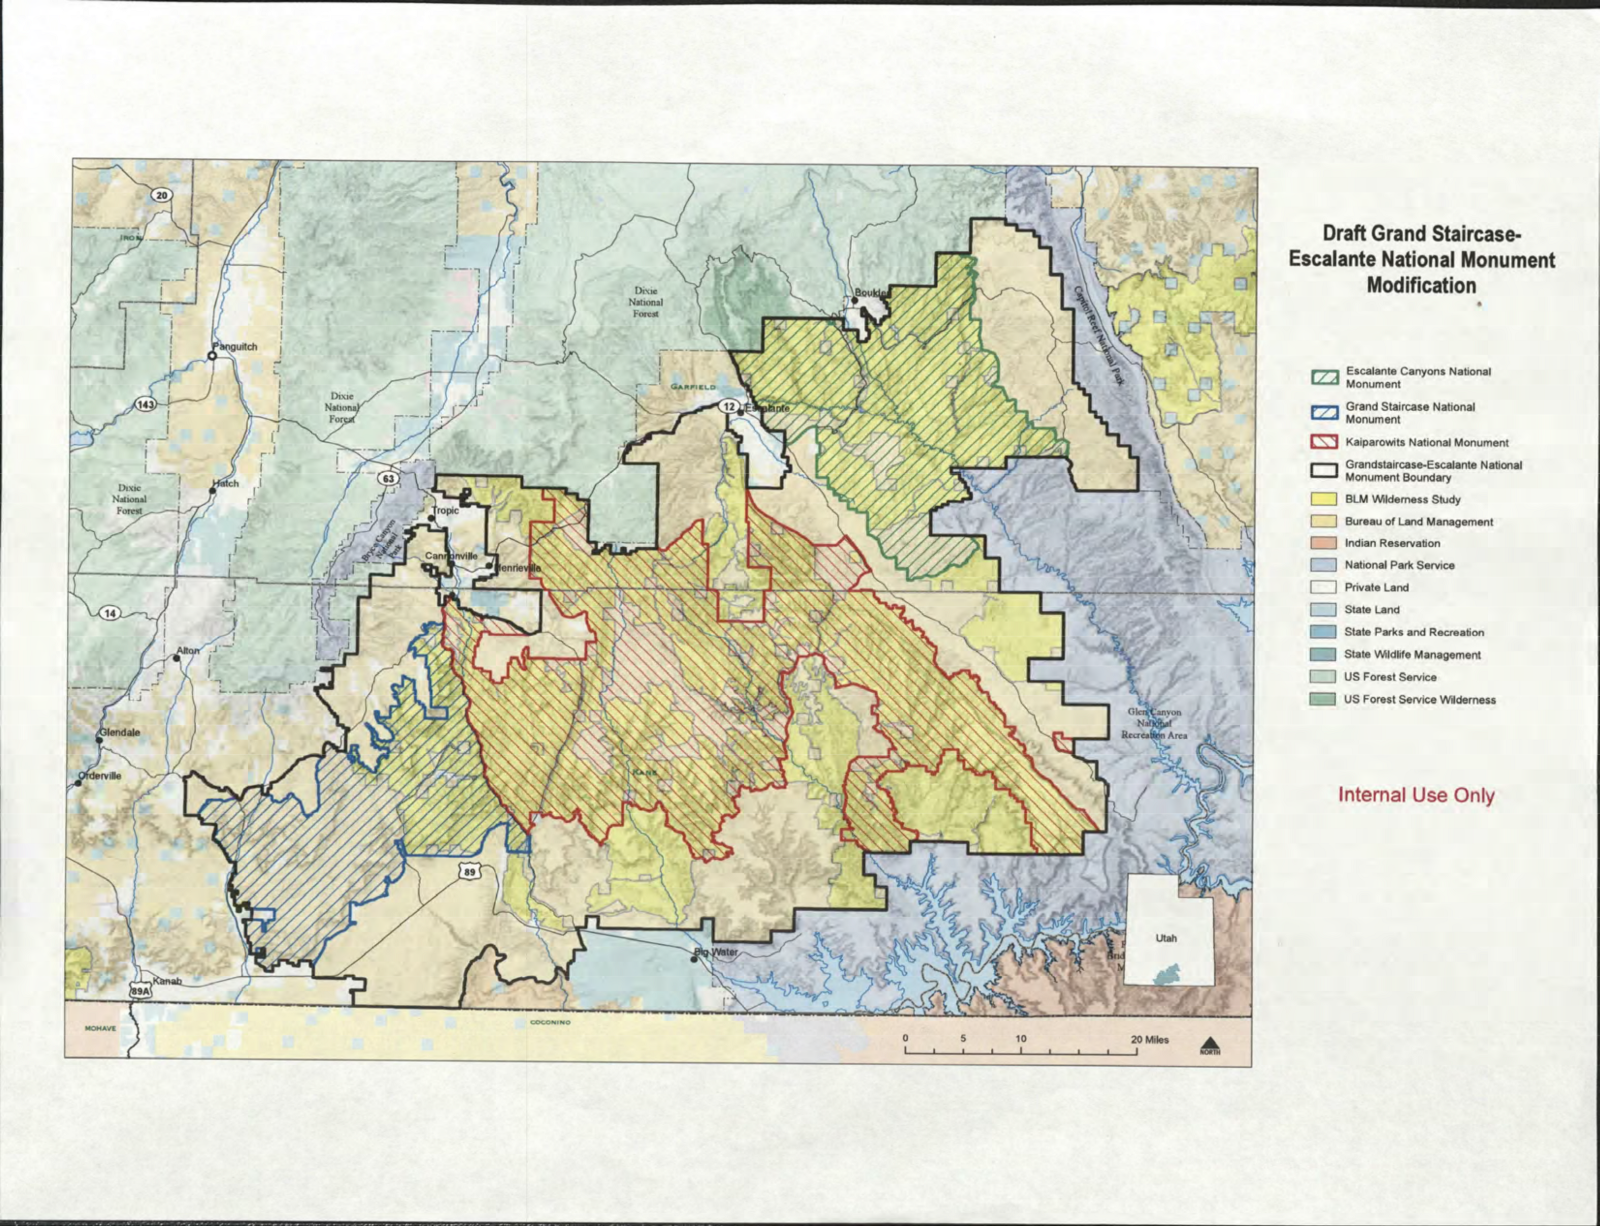 these maps leaked to the washington post show that president trump s proclamation would eliminate both bears ears l and grand staircase escalante r